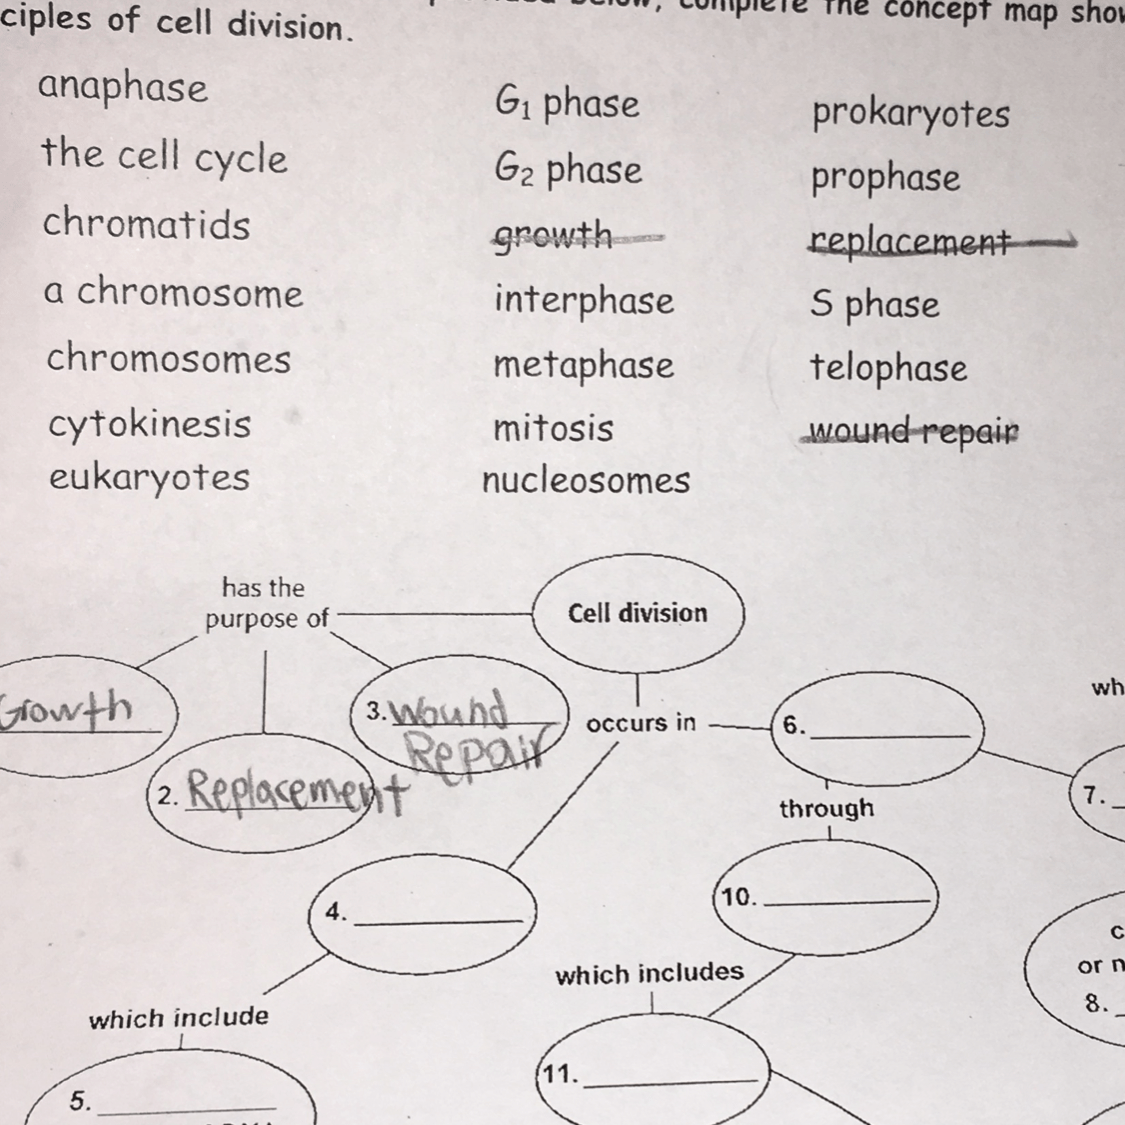 Where Does Cell Division Occur In 4 And 6